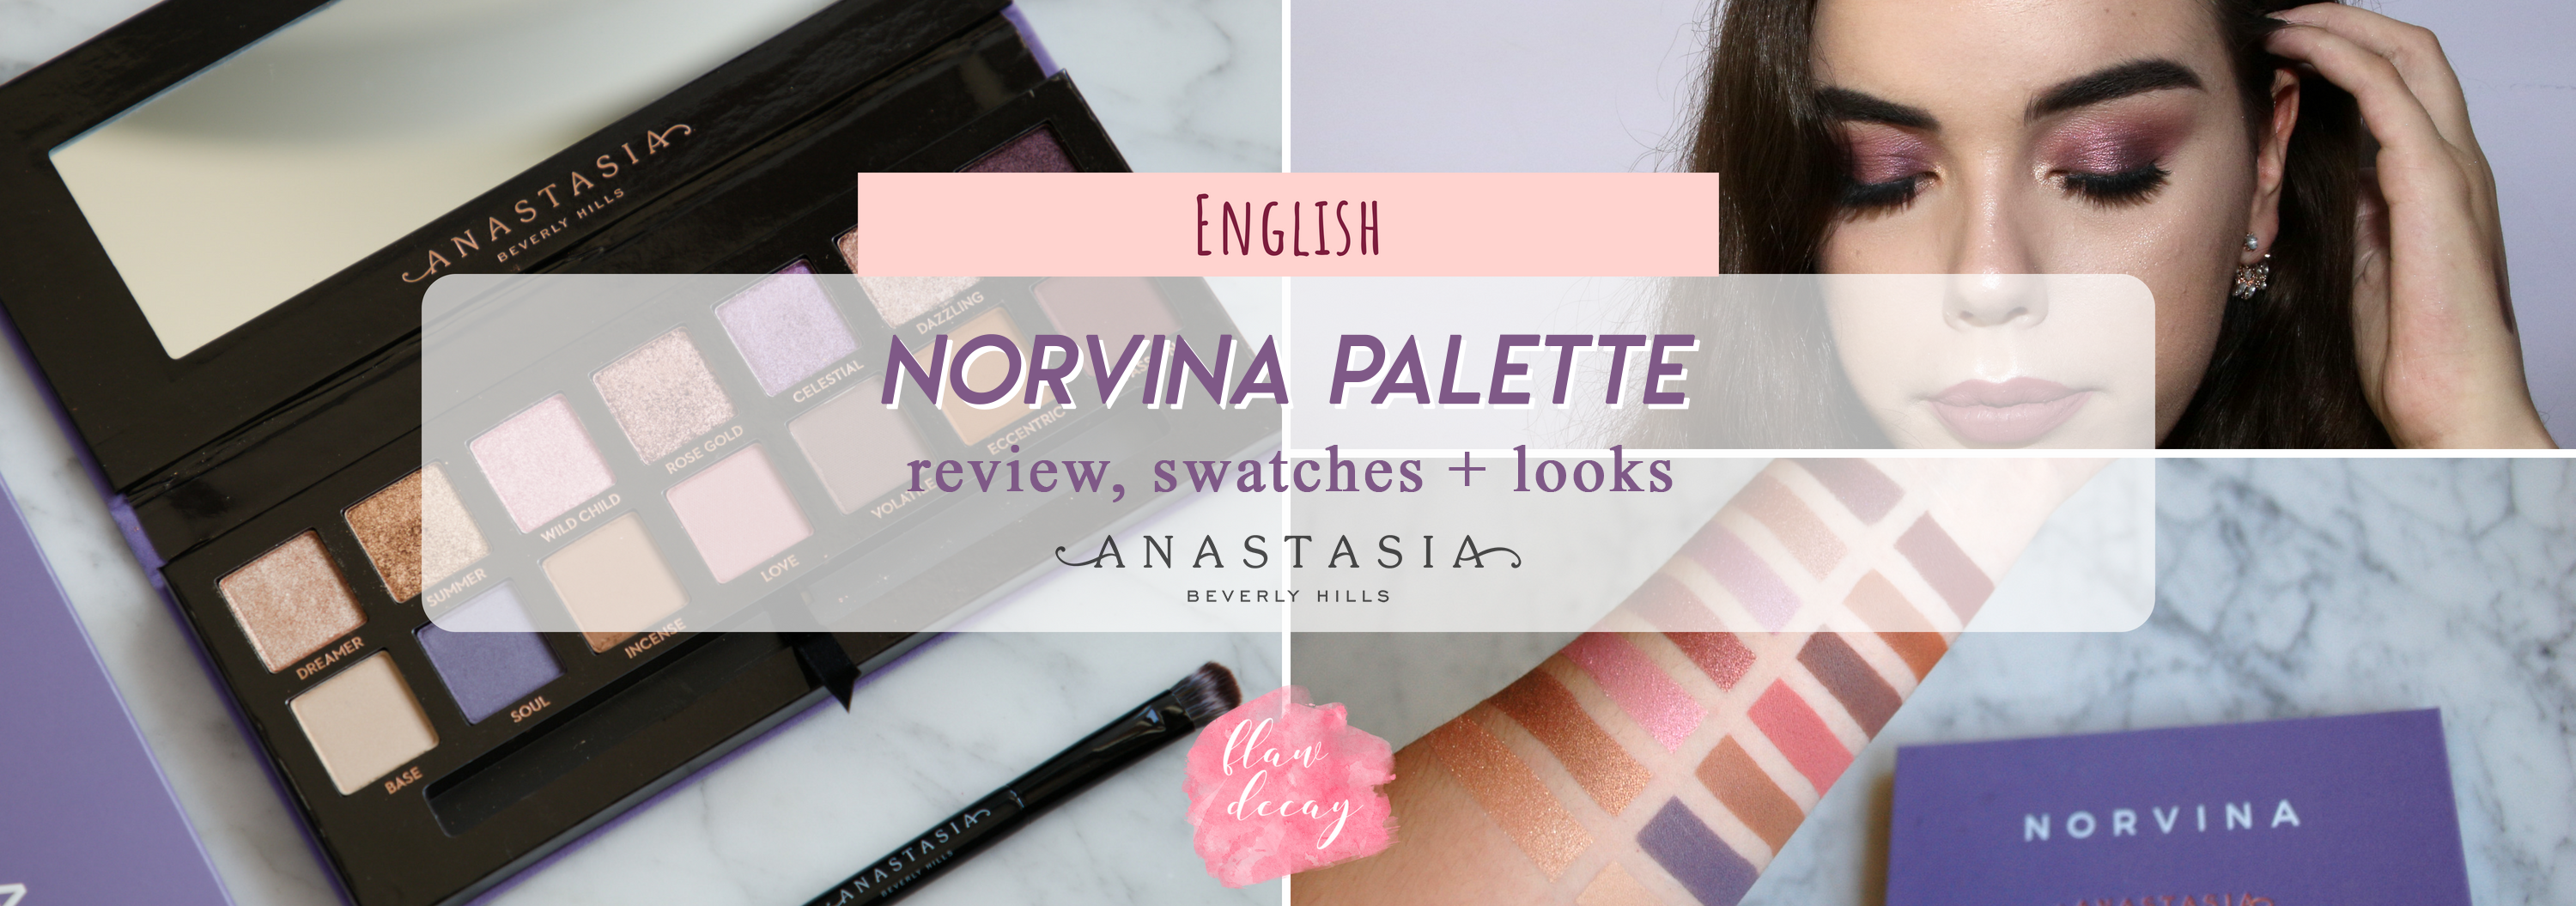 Review: Norvina Palette – Anastasia Beverly Hills (+ swatches & looks)